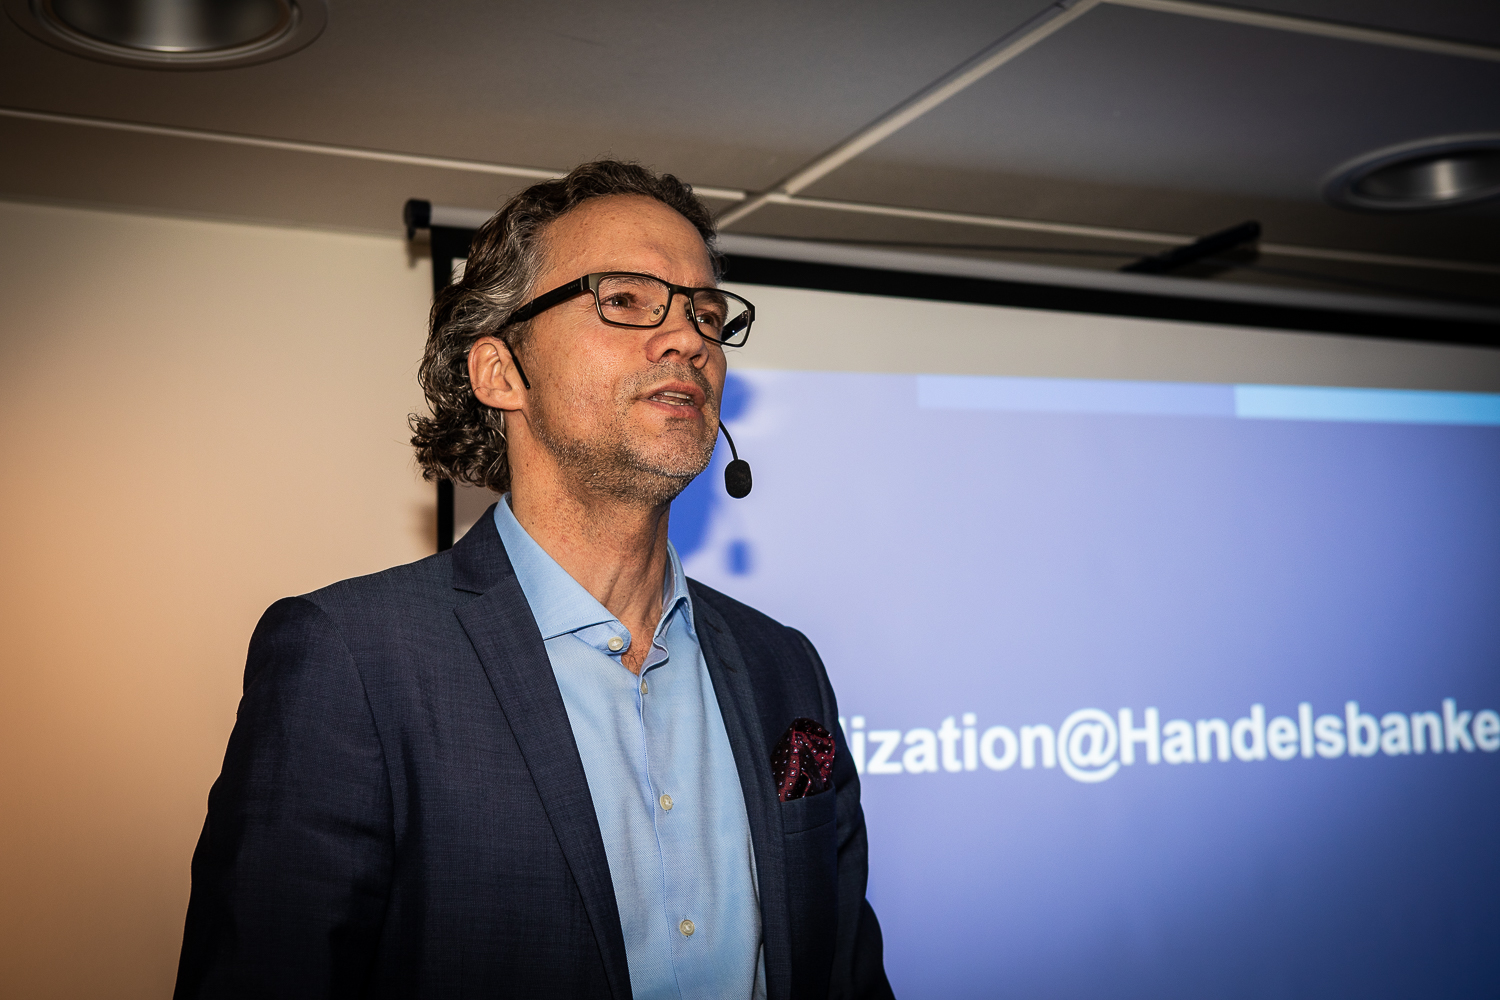 Stephan Erne gave us a little insight about the digital transformation.